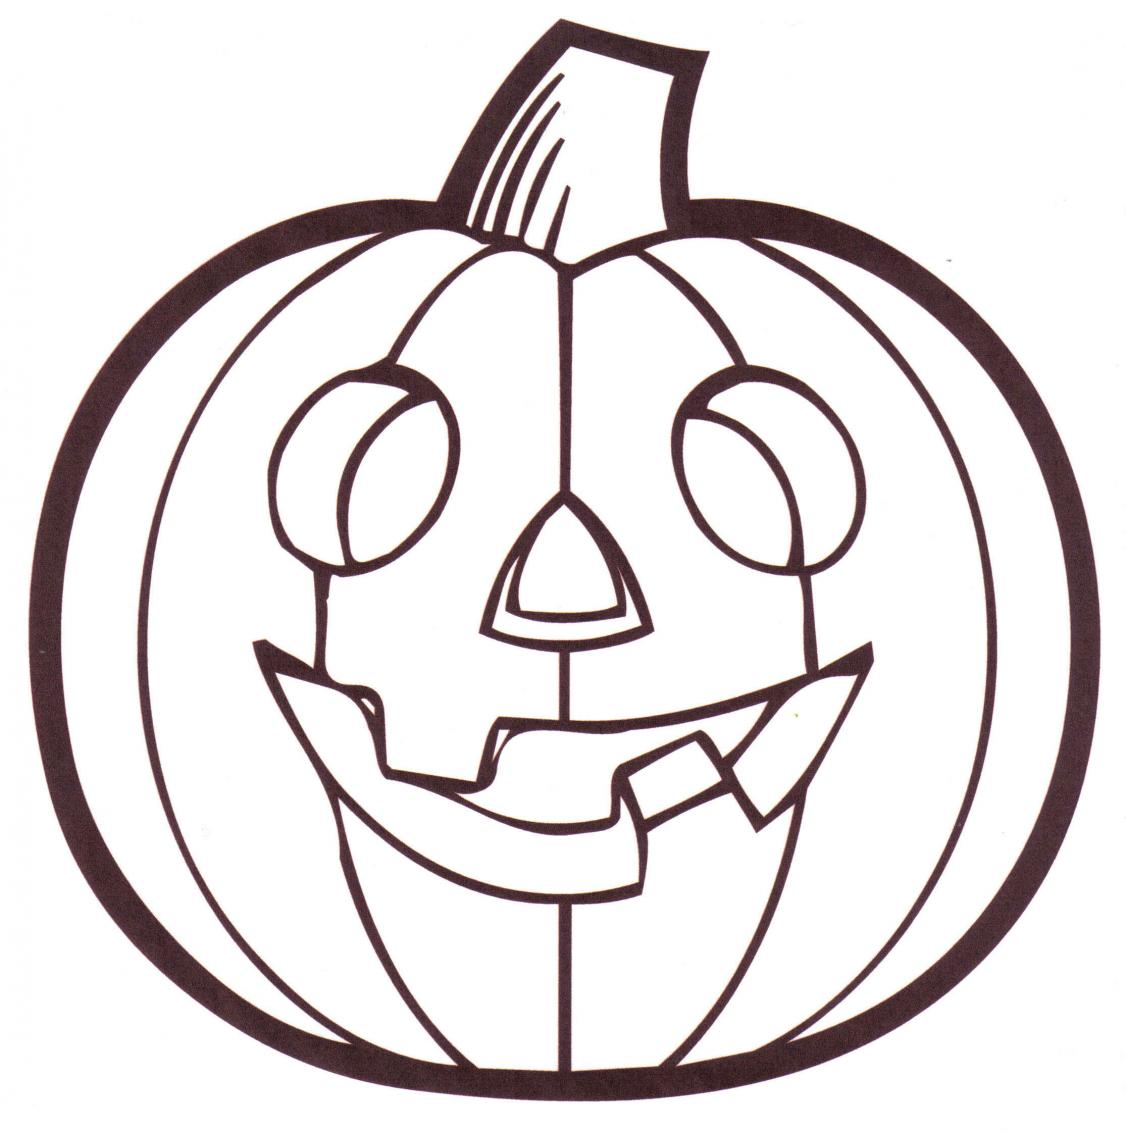 Ridiculous image intended for jackolantern printable